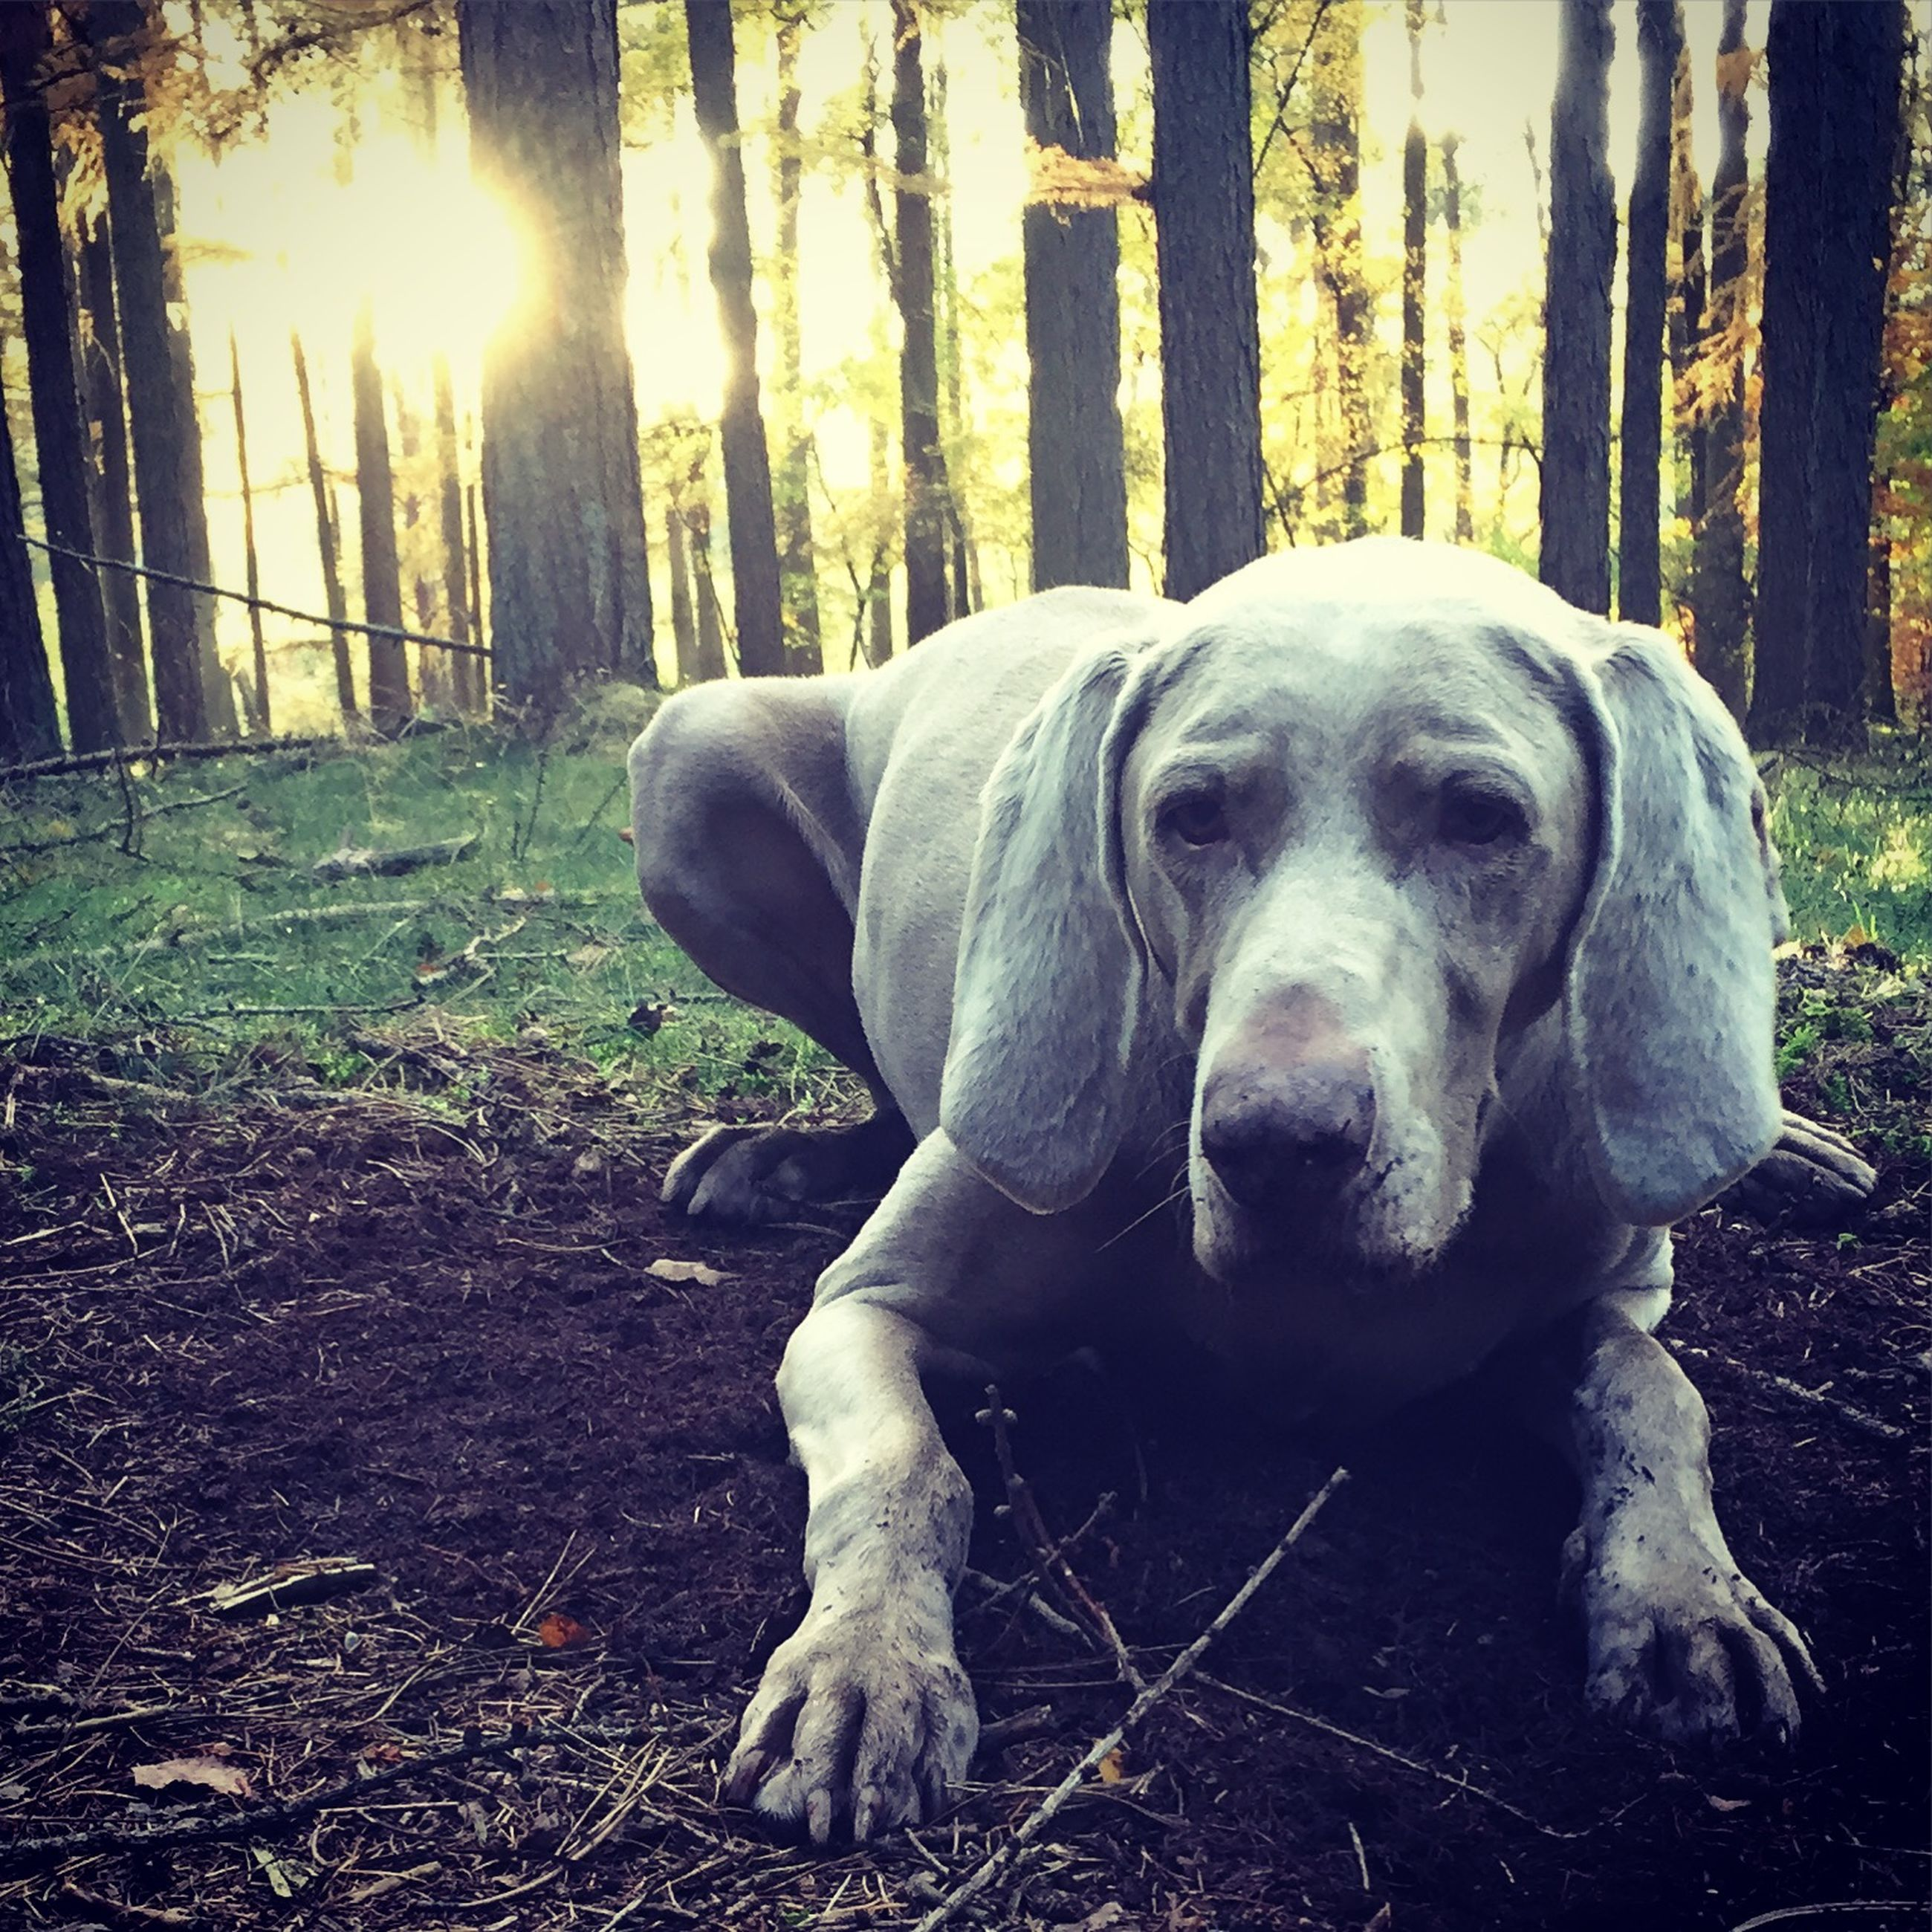 dog, pets, mammal, tree, one animal, animal themes, forest, sunlight, field, domestic animals, no people, outdoors, relaxation, nature, park - man made space, day, close-up, tree trunk, focus on foreground, leaf